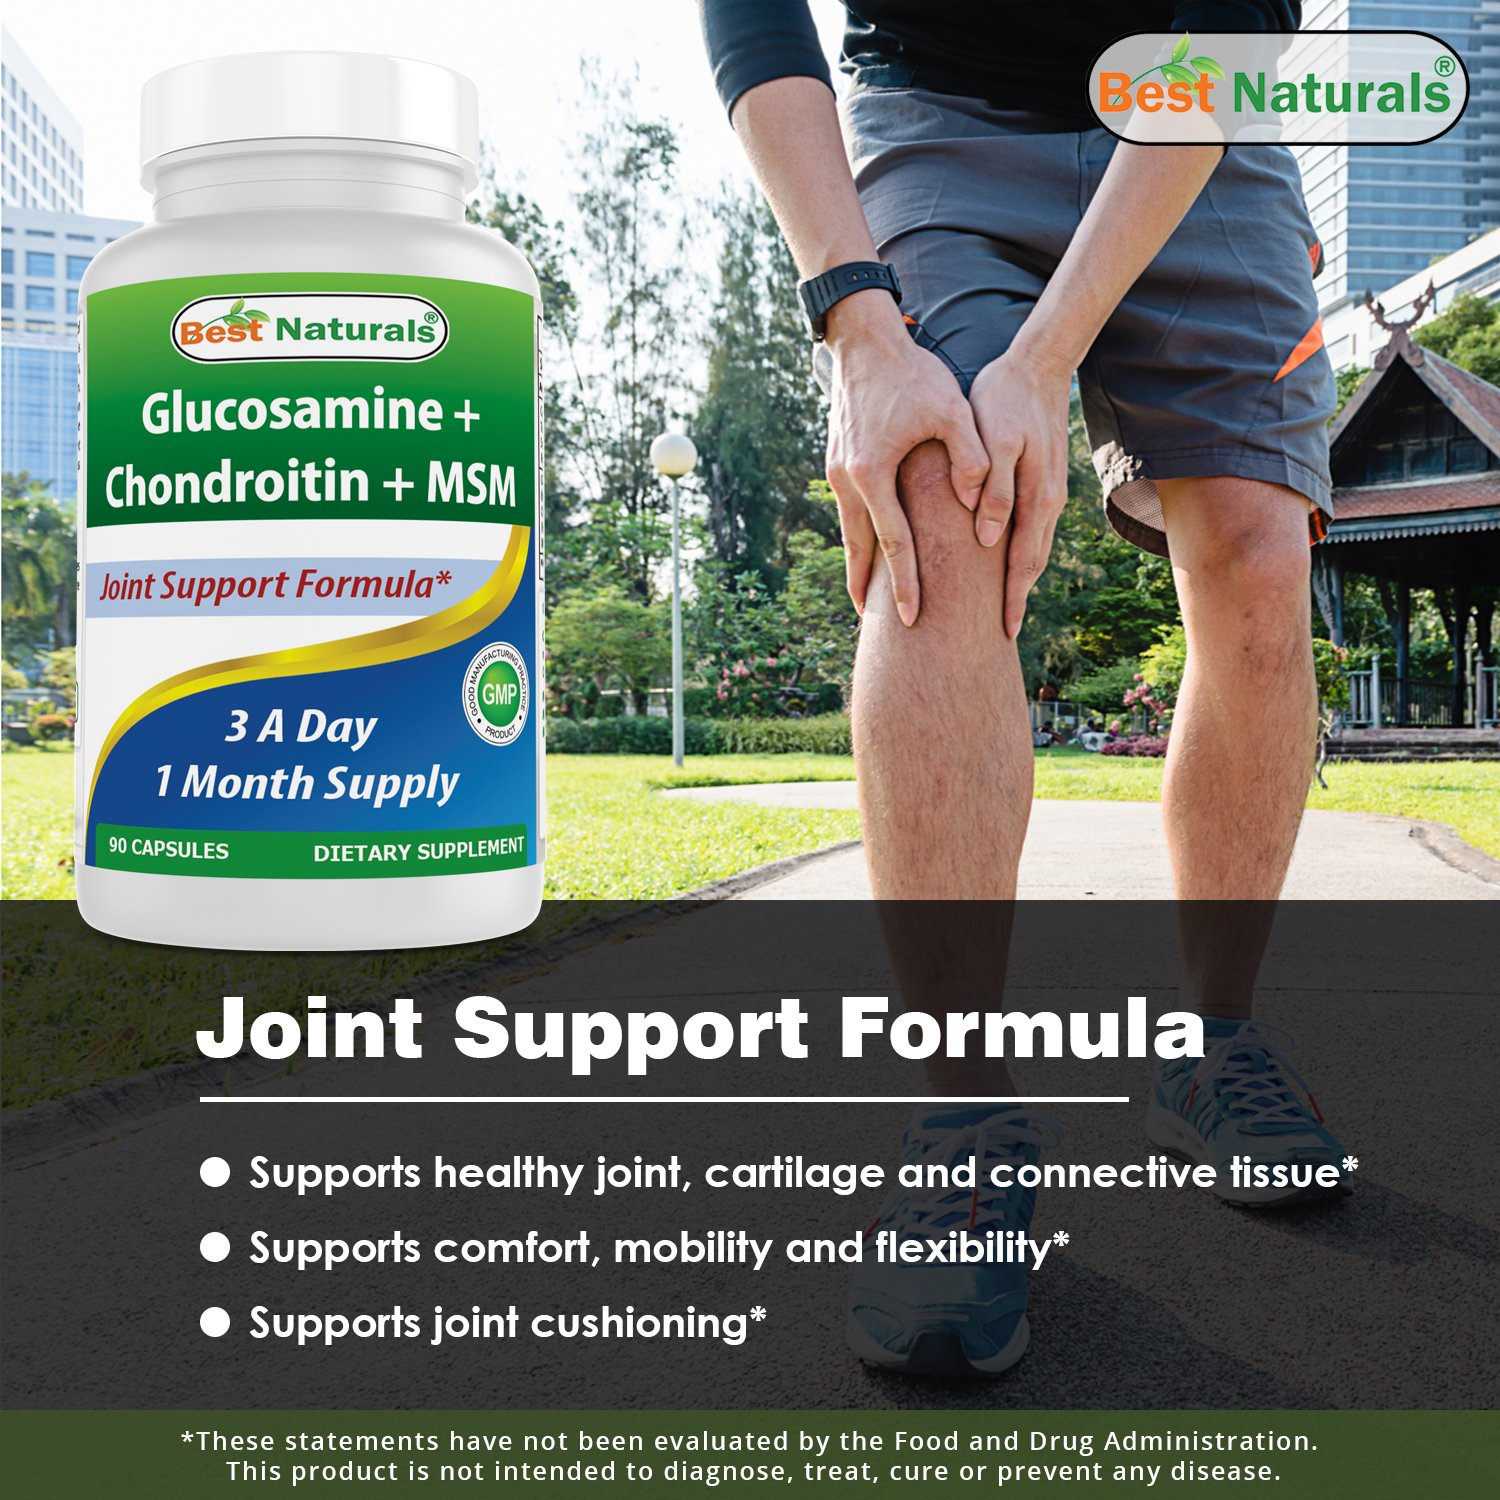 Best Naturals Glucosamine Chondroitin And Msm Joint Pain Puritan Pride Triple Strength 90 Caps Relief Supplement Count Health Personal Care